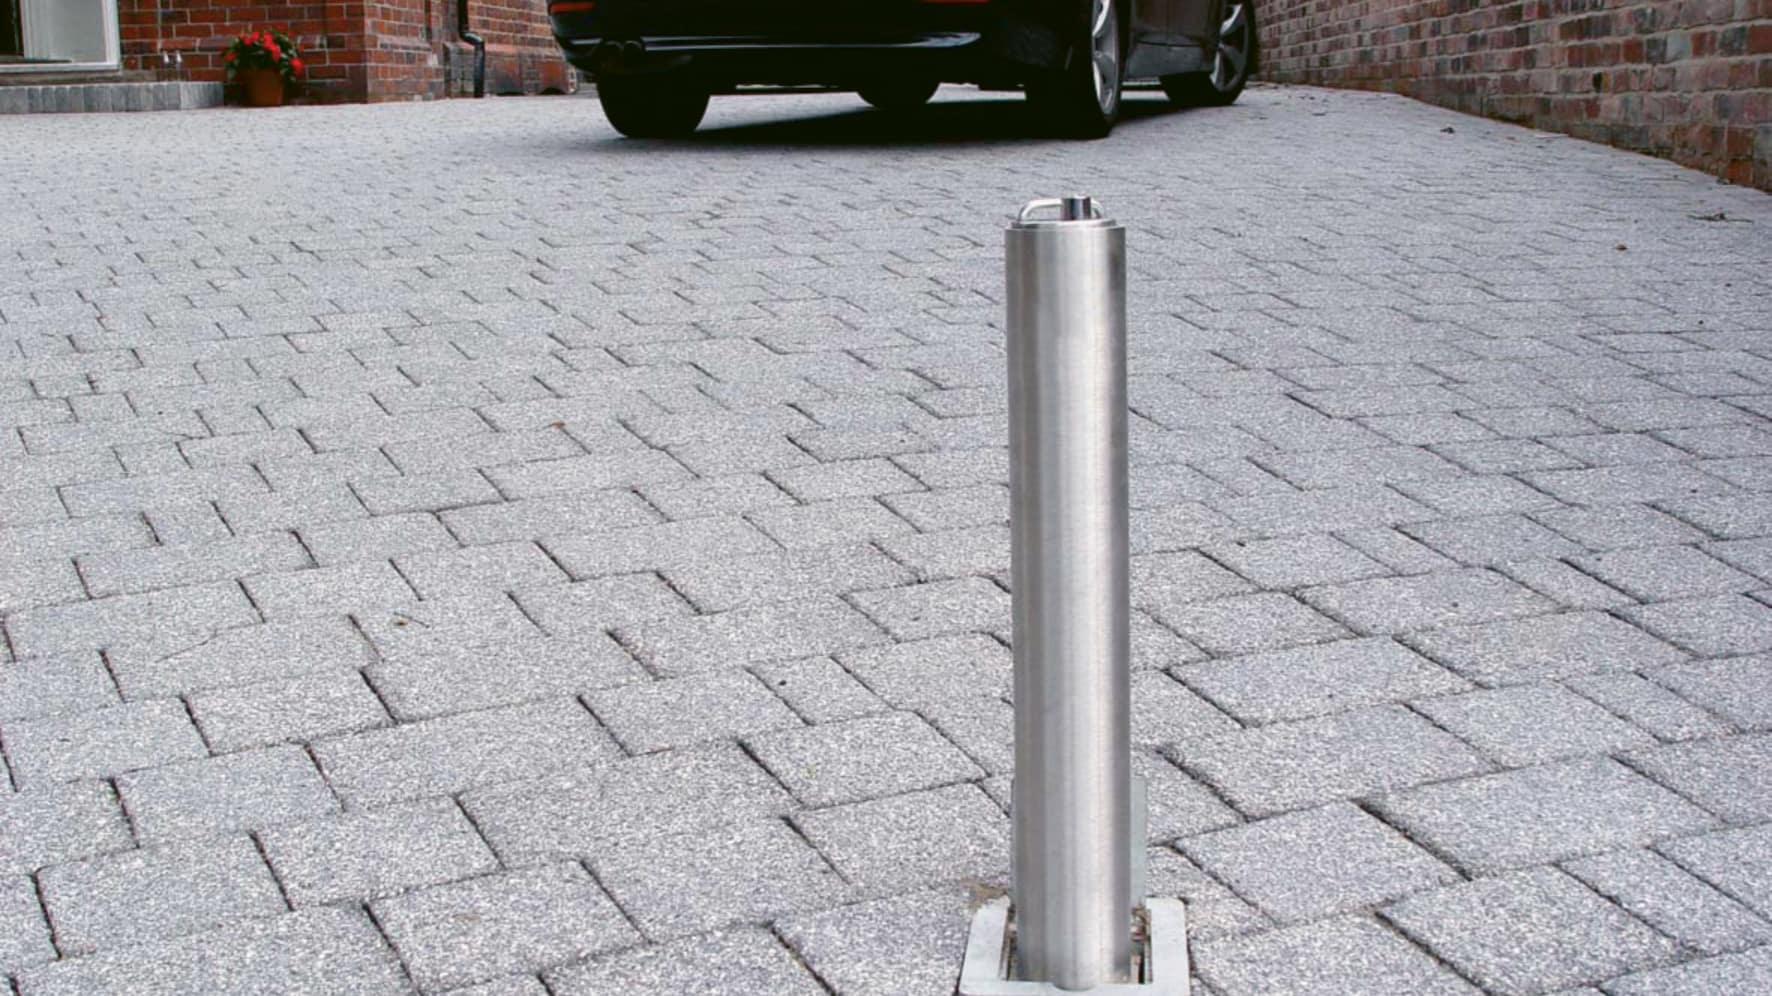 telescopic bollards on a driveway